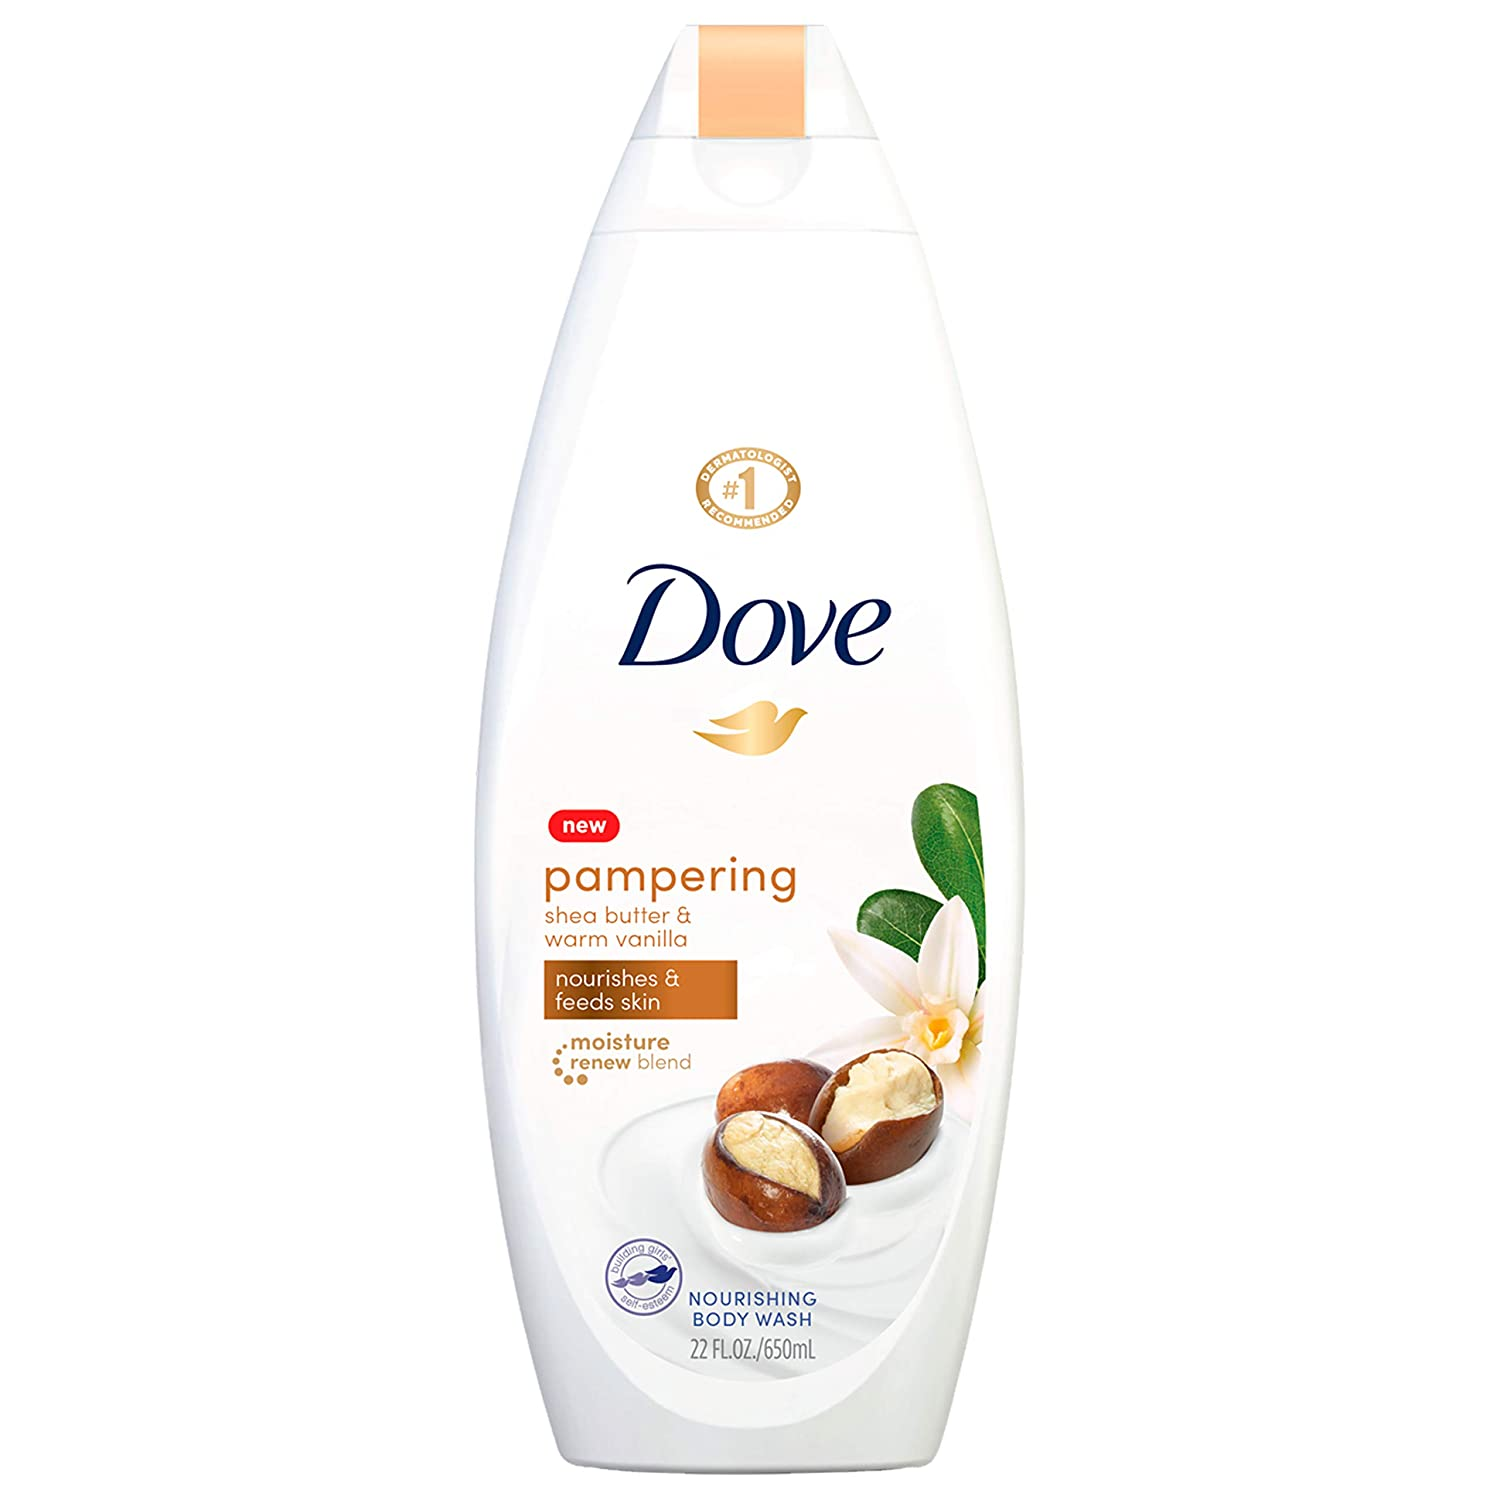 Amazon Com Dove Pampering Body Wash Nourishes Feeds Skin Shea Butter With Warm Vanilla Effectively Washes Away Bacteria While Nourishing Your Skin 22 Oz Bath And Shower Gels Beauty